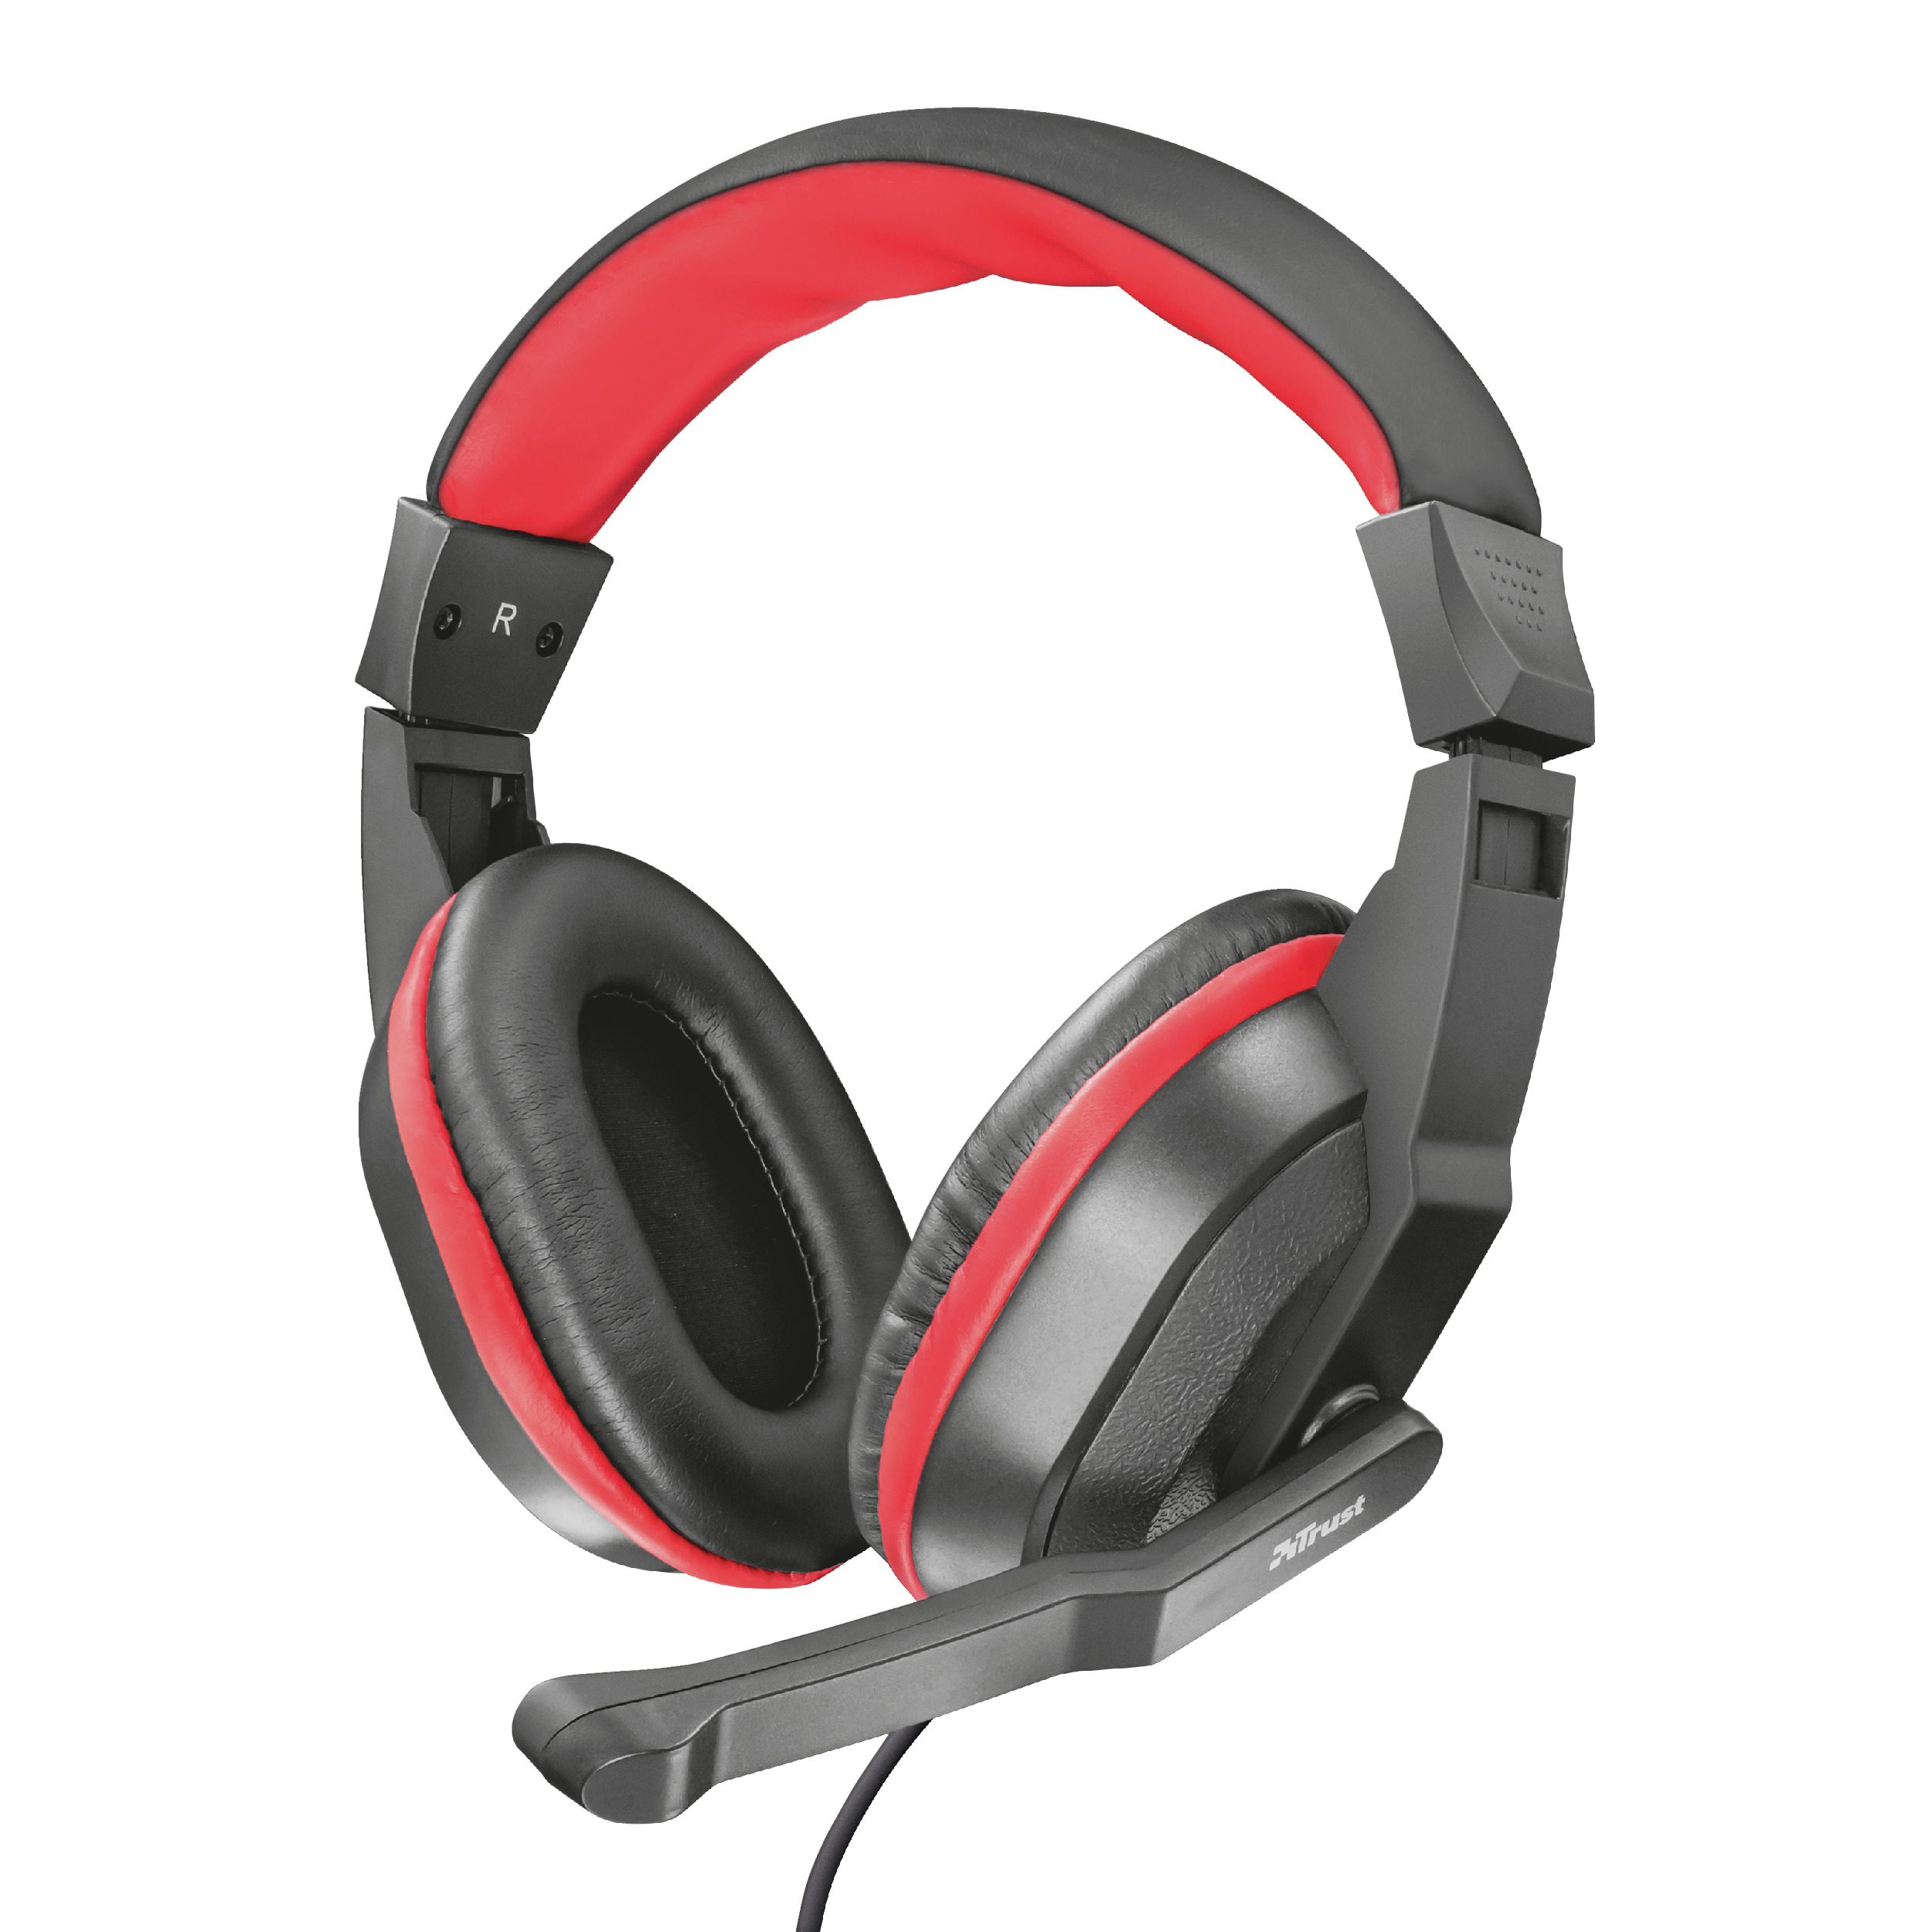 TRUST Ziva Comfortable Gaming Headset with Microphone 21953